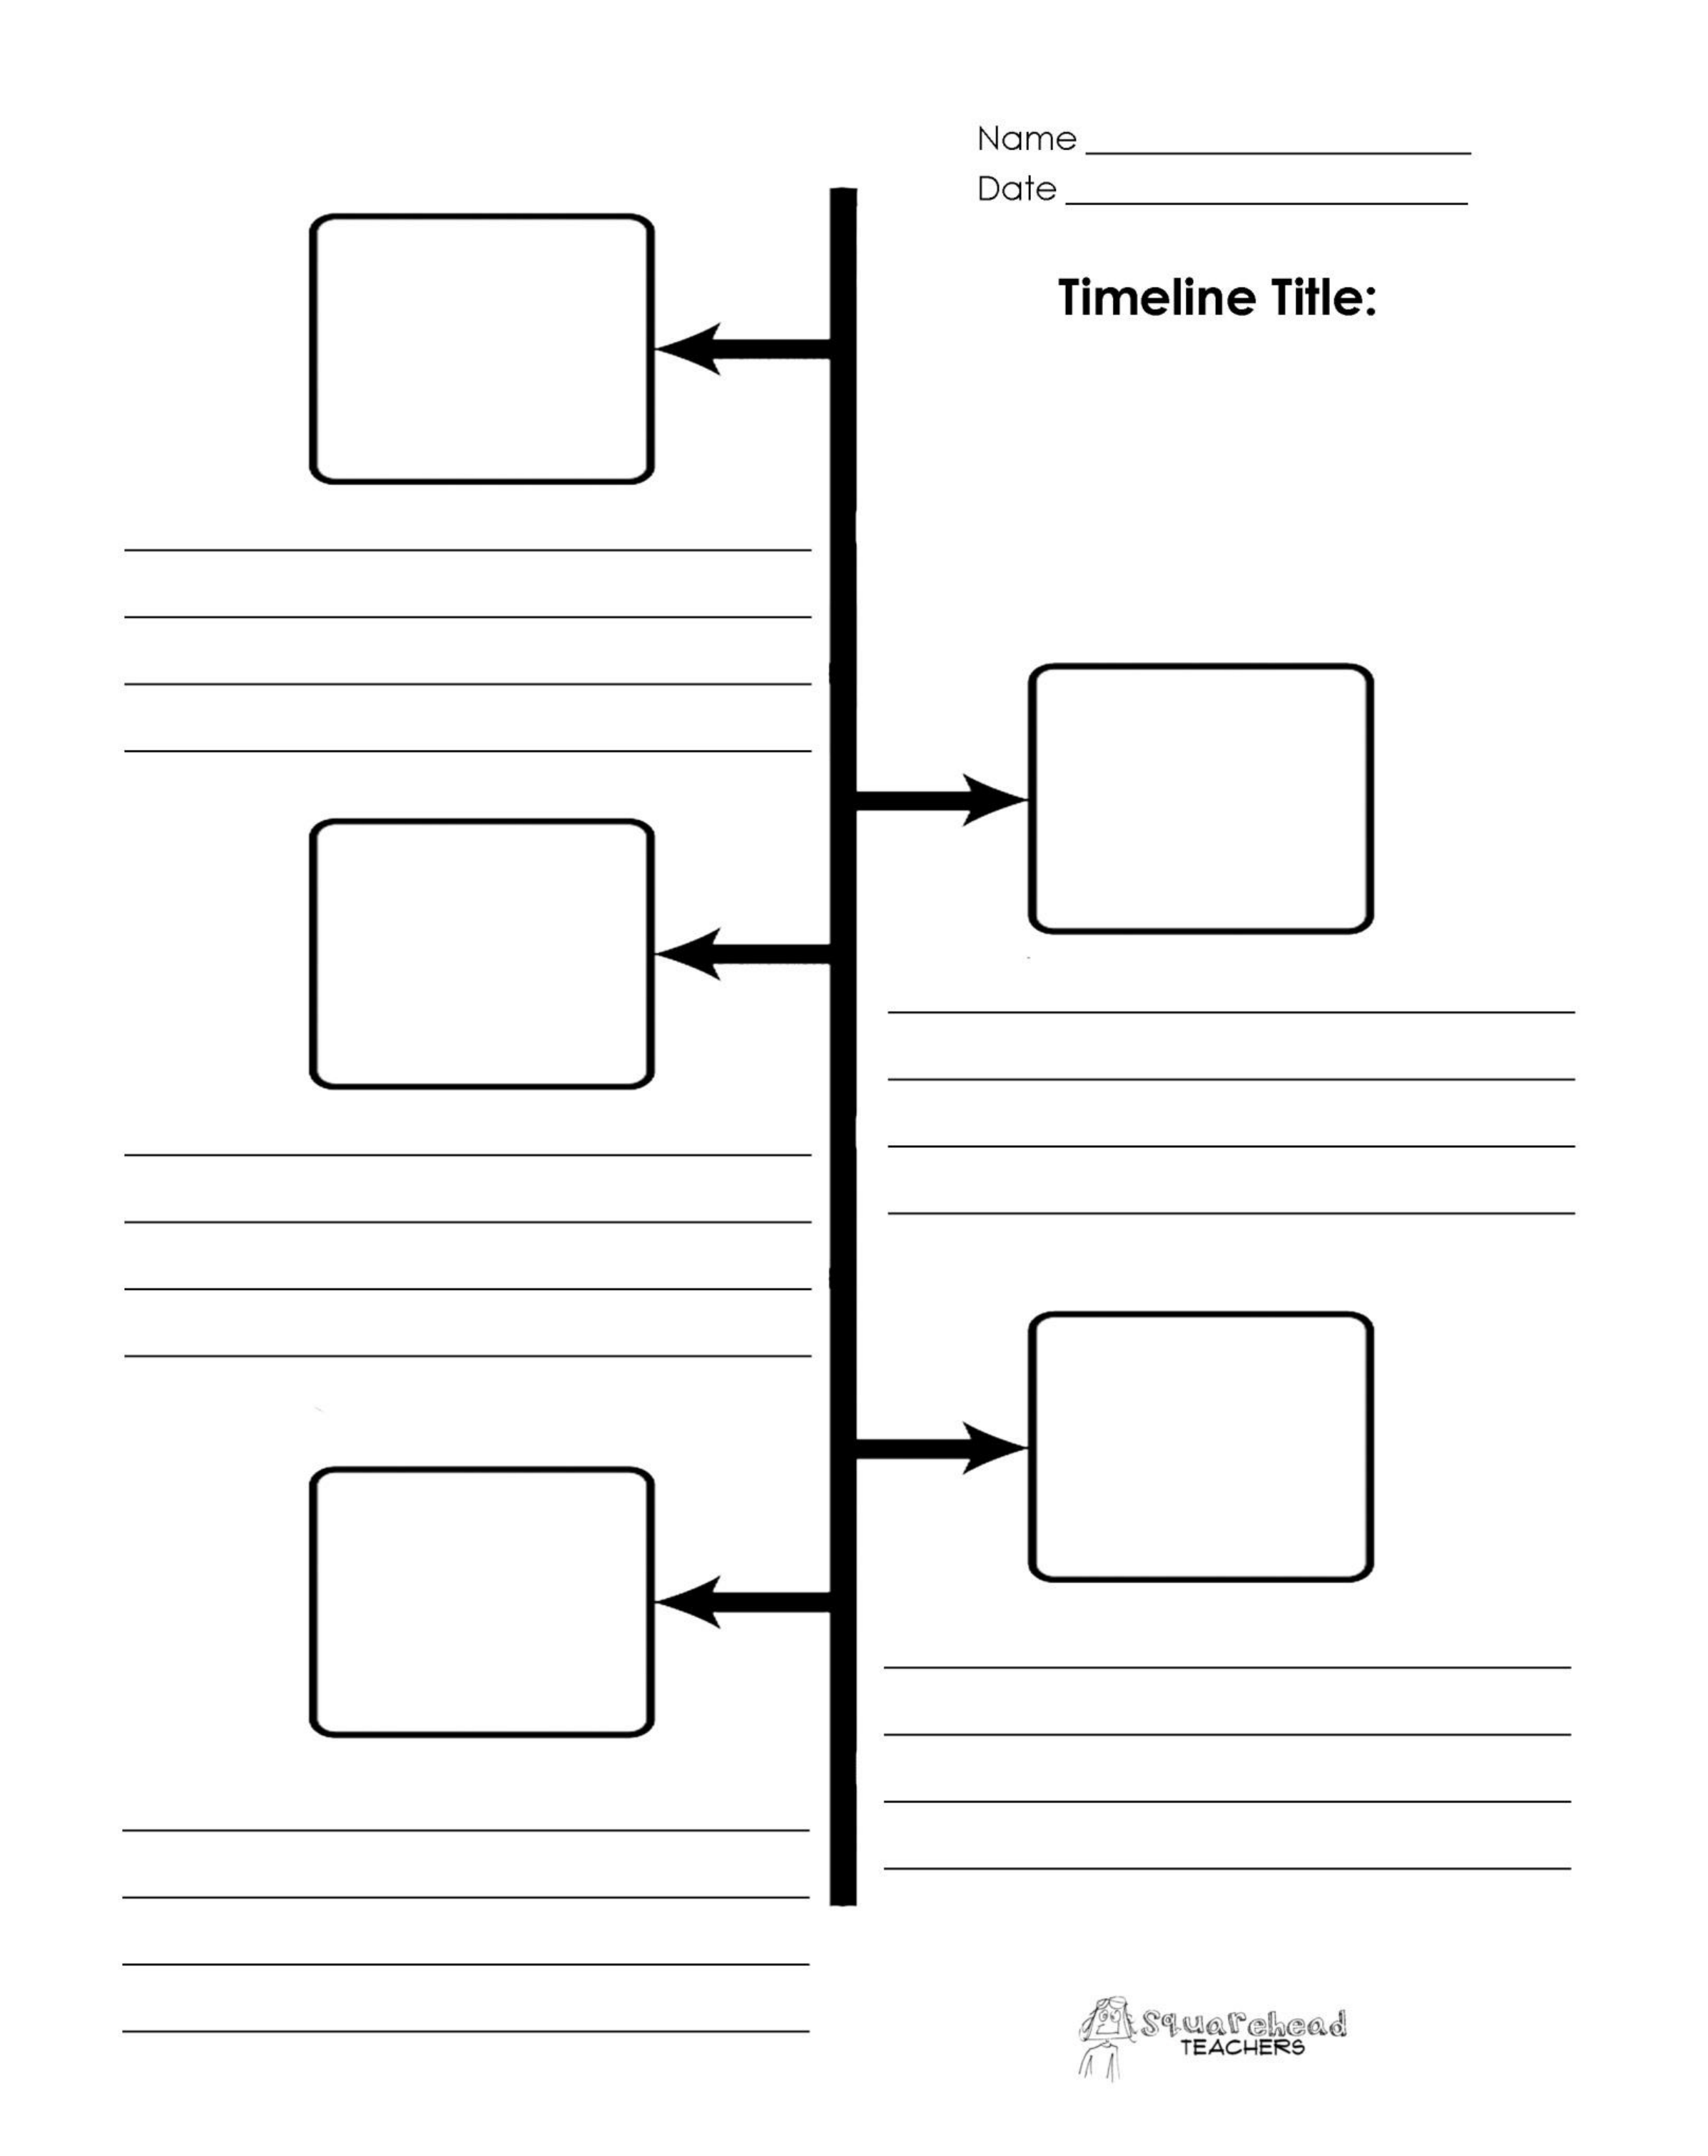 Blank project timeline template free download for Timline template